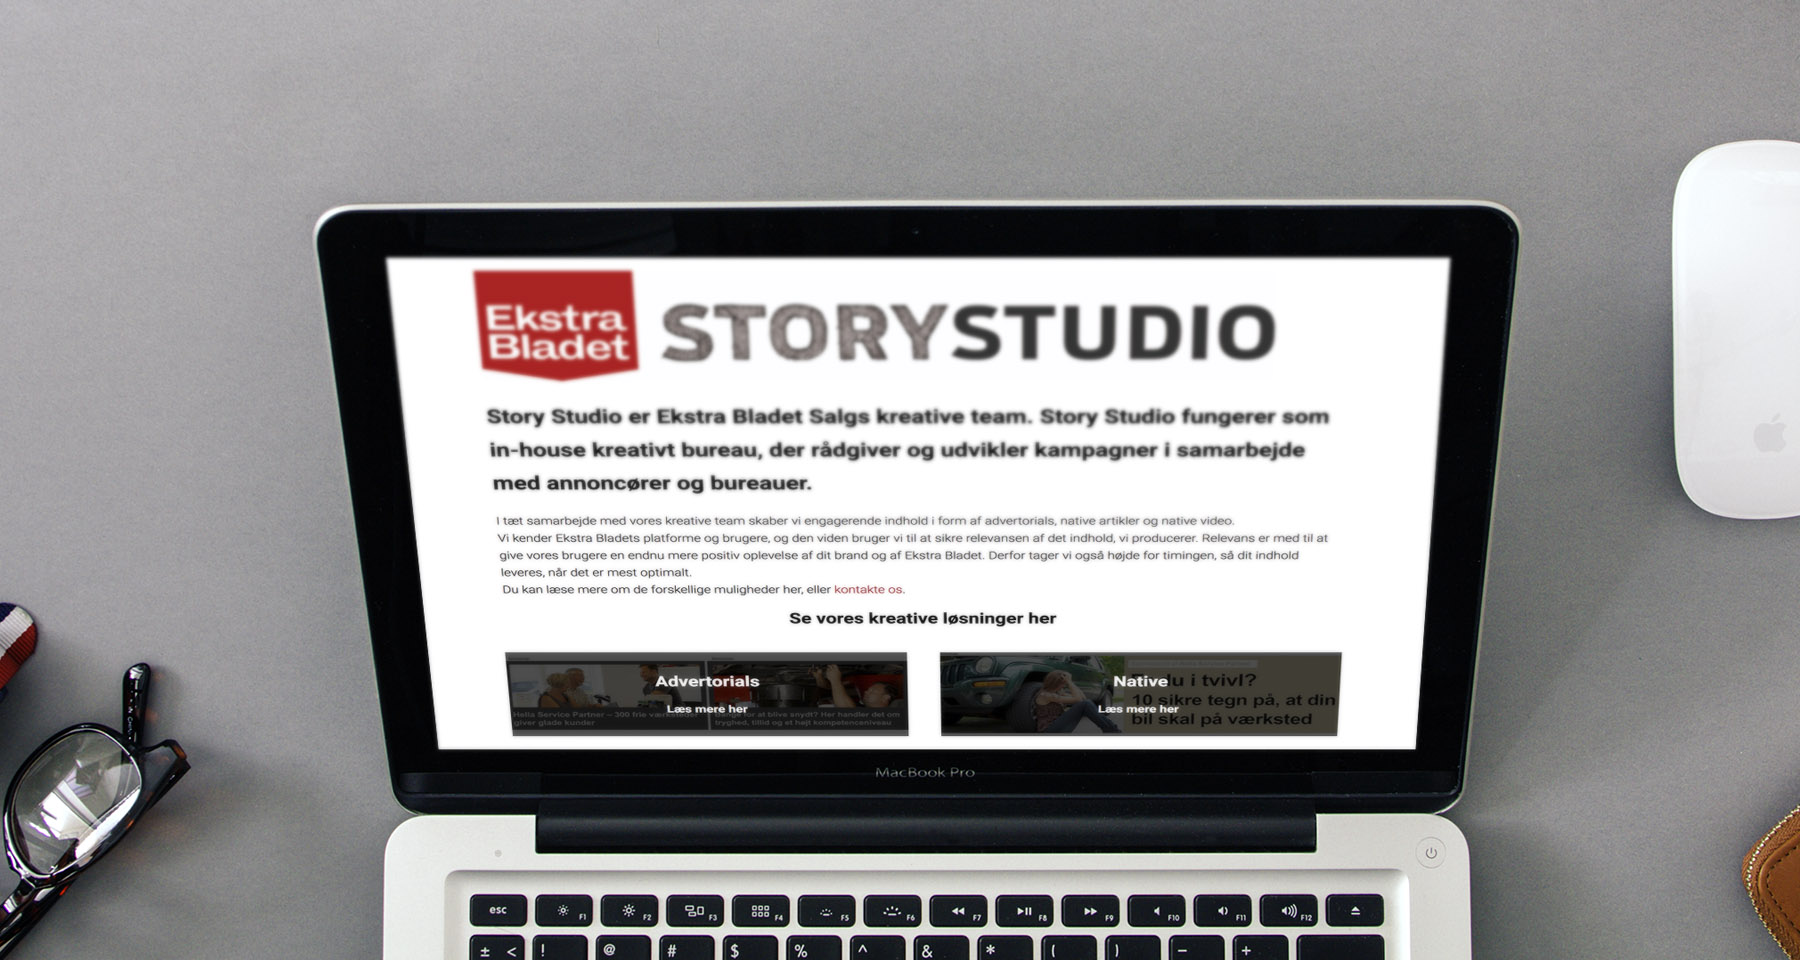 Ekstra Bladet Story Studio campaign demonstrates power of native advertising